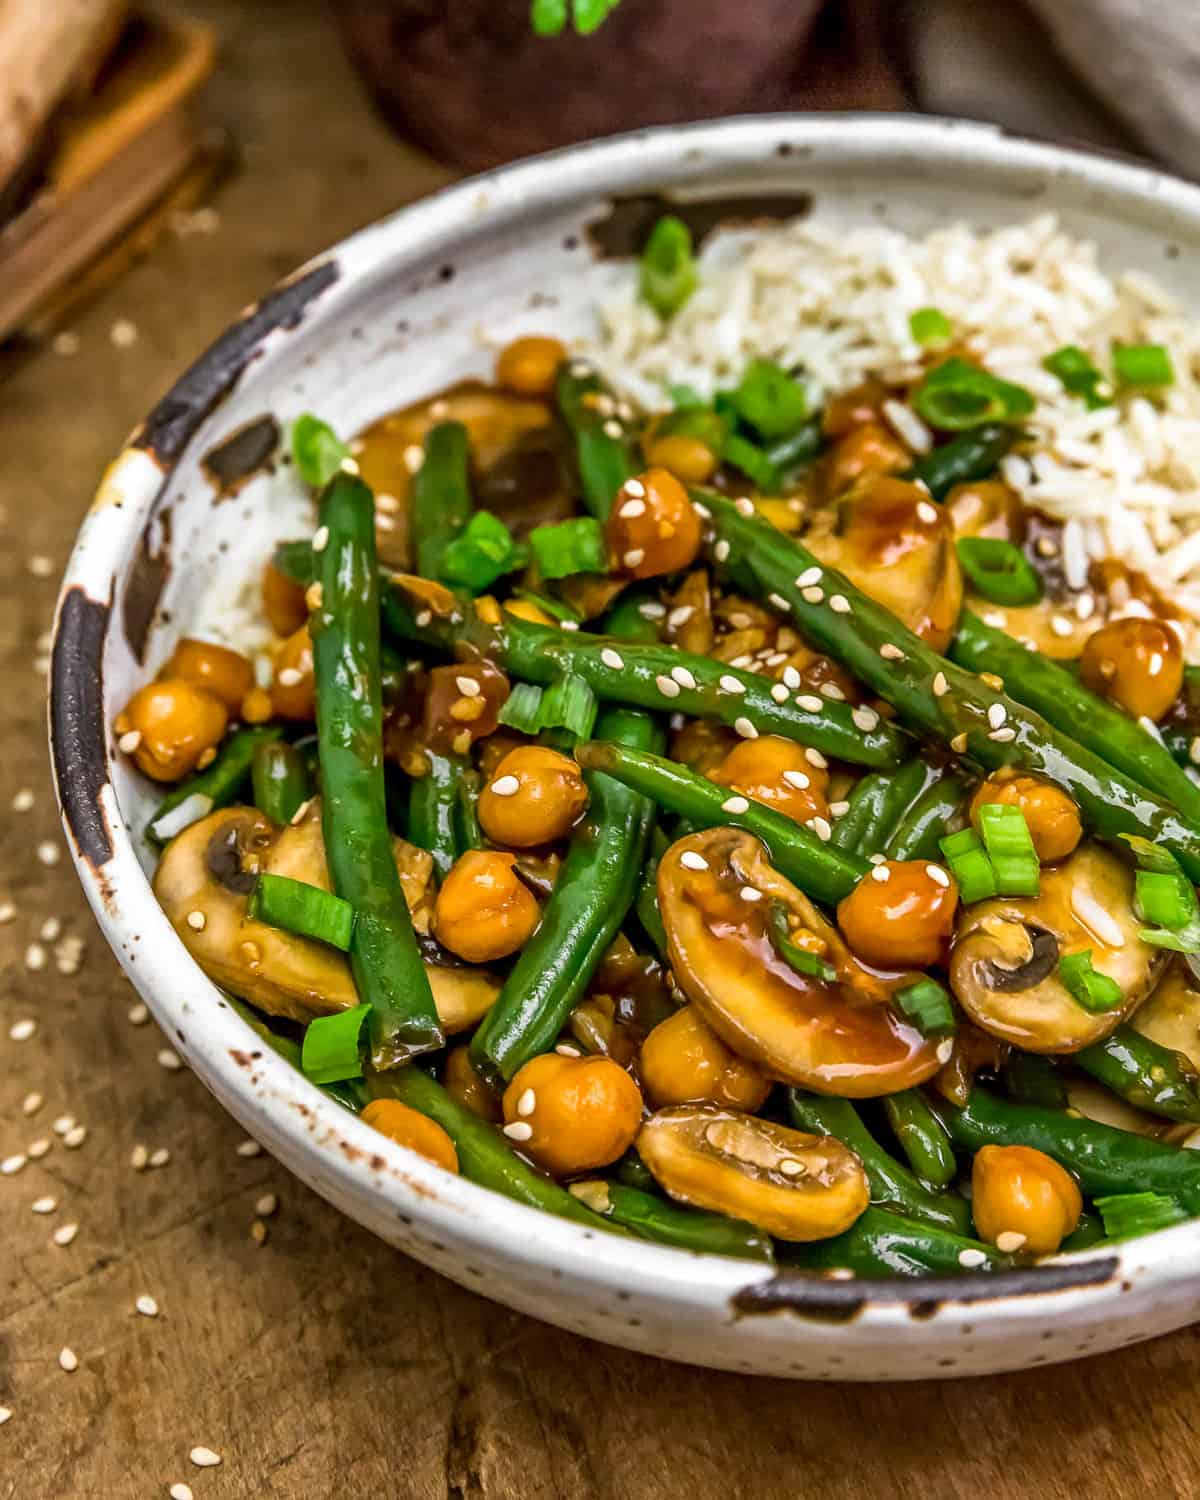 Bowl of Asian Green Beans and Mushrooms